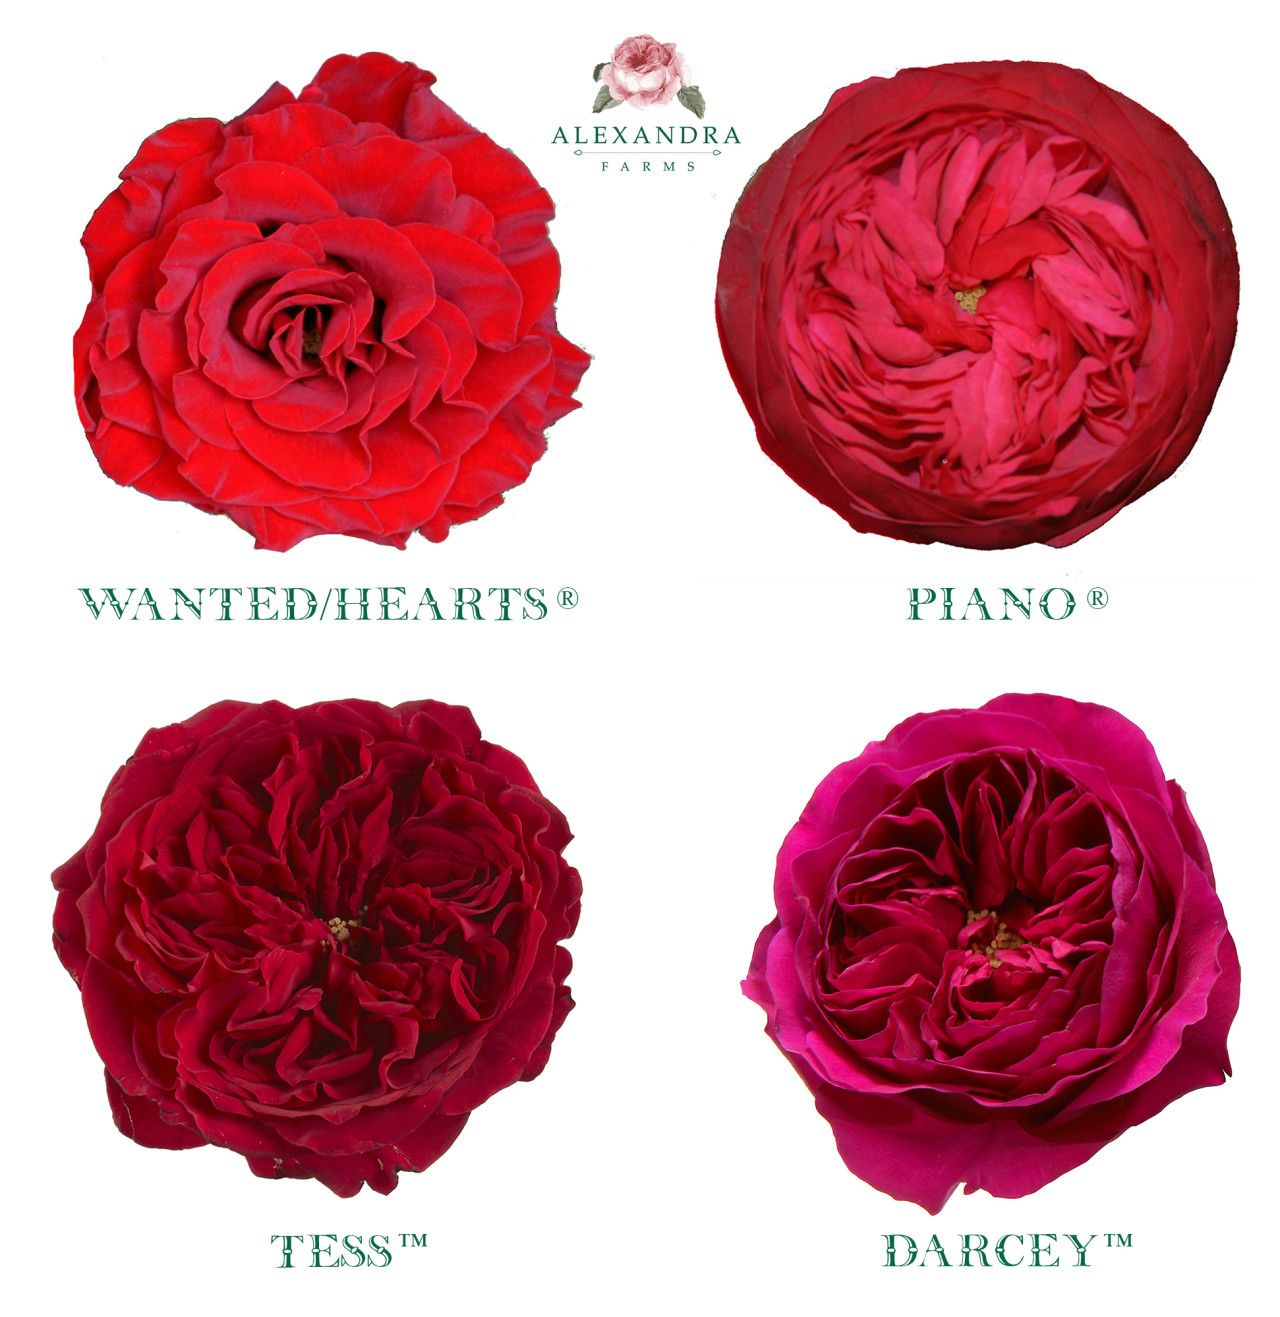 Today Is Red Rose Day This Holiday Honors The Flower That Is A Symbol Of Love And Romance We Grow Four Red Garden Roses At Alexandra Rose Rose Garden Flowers